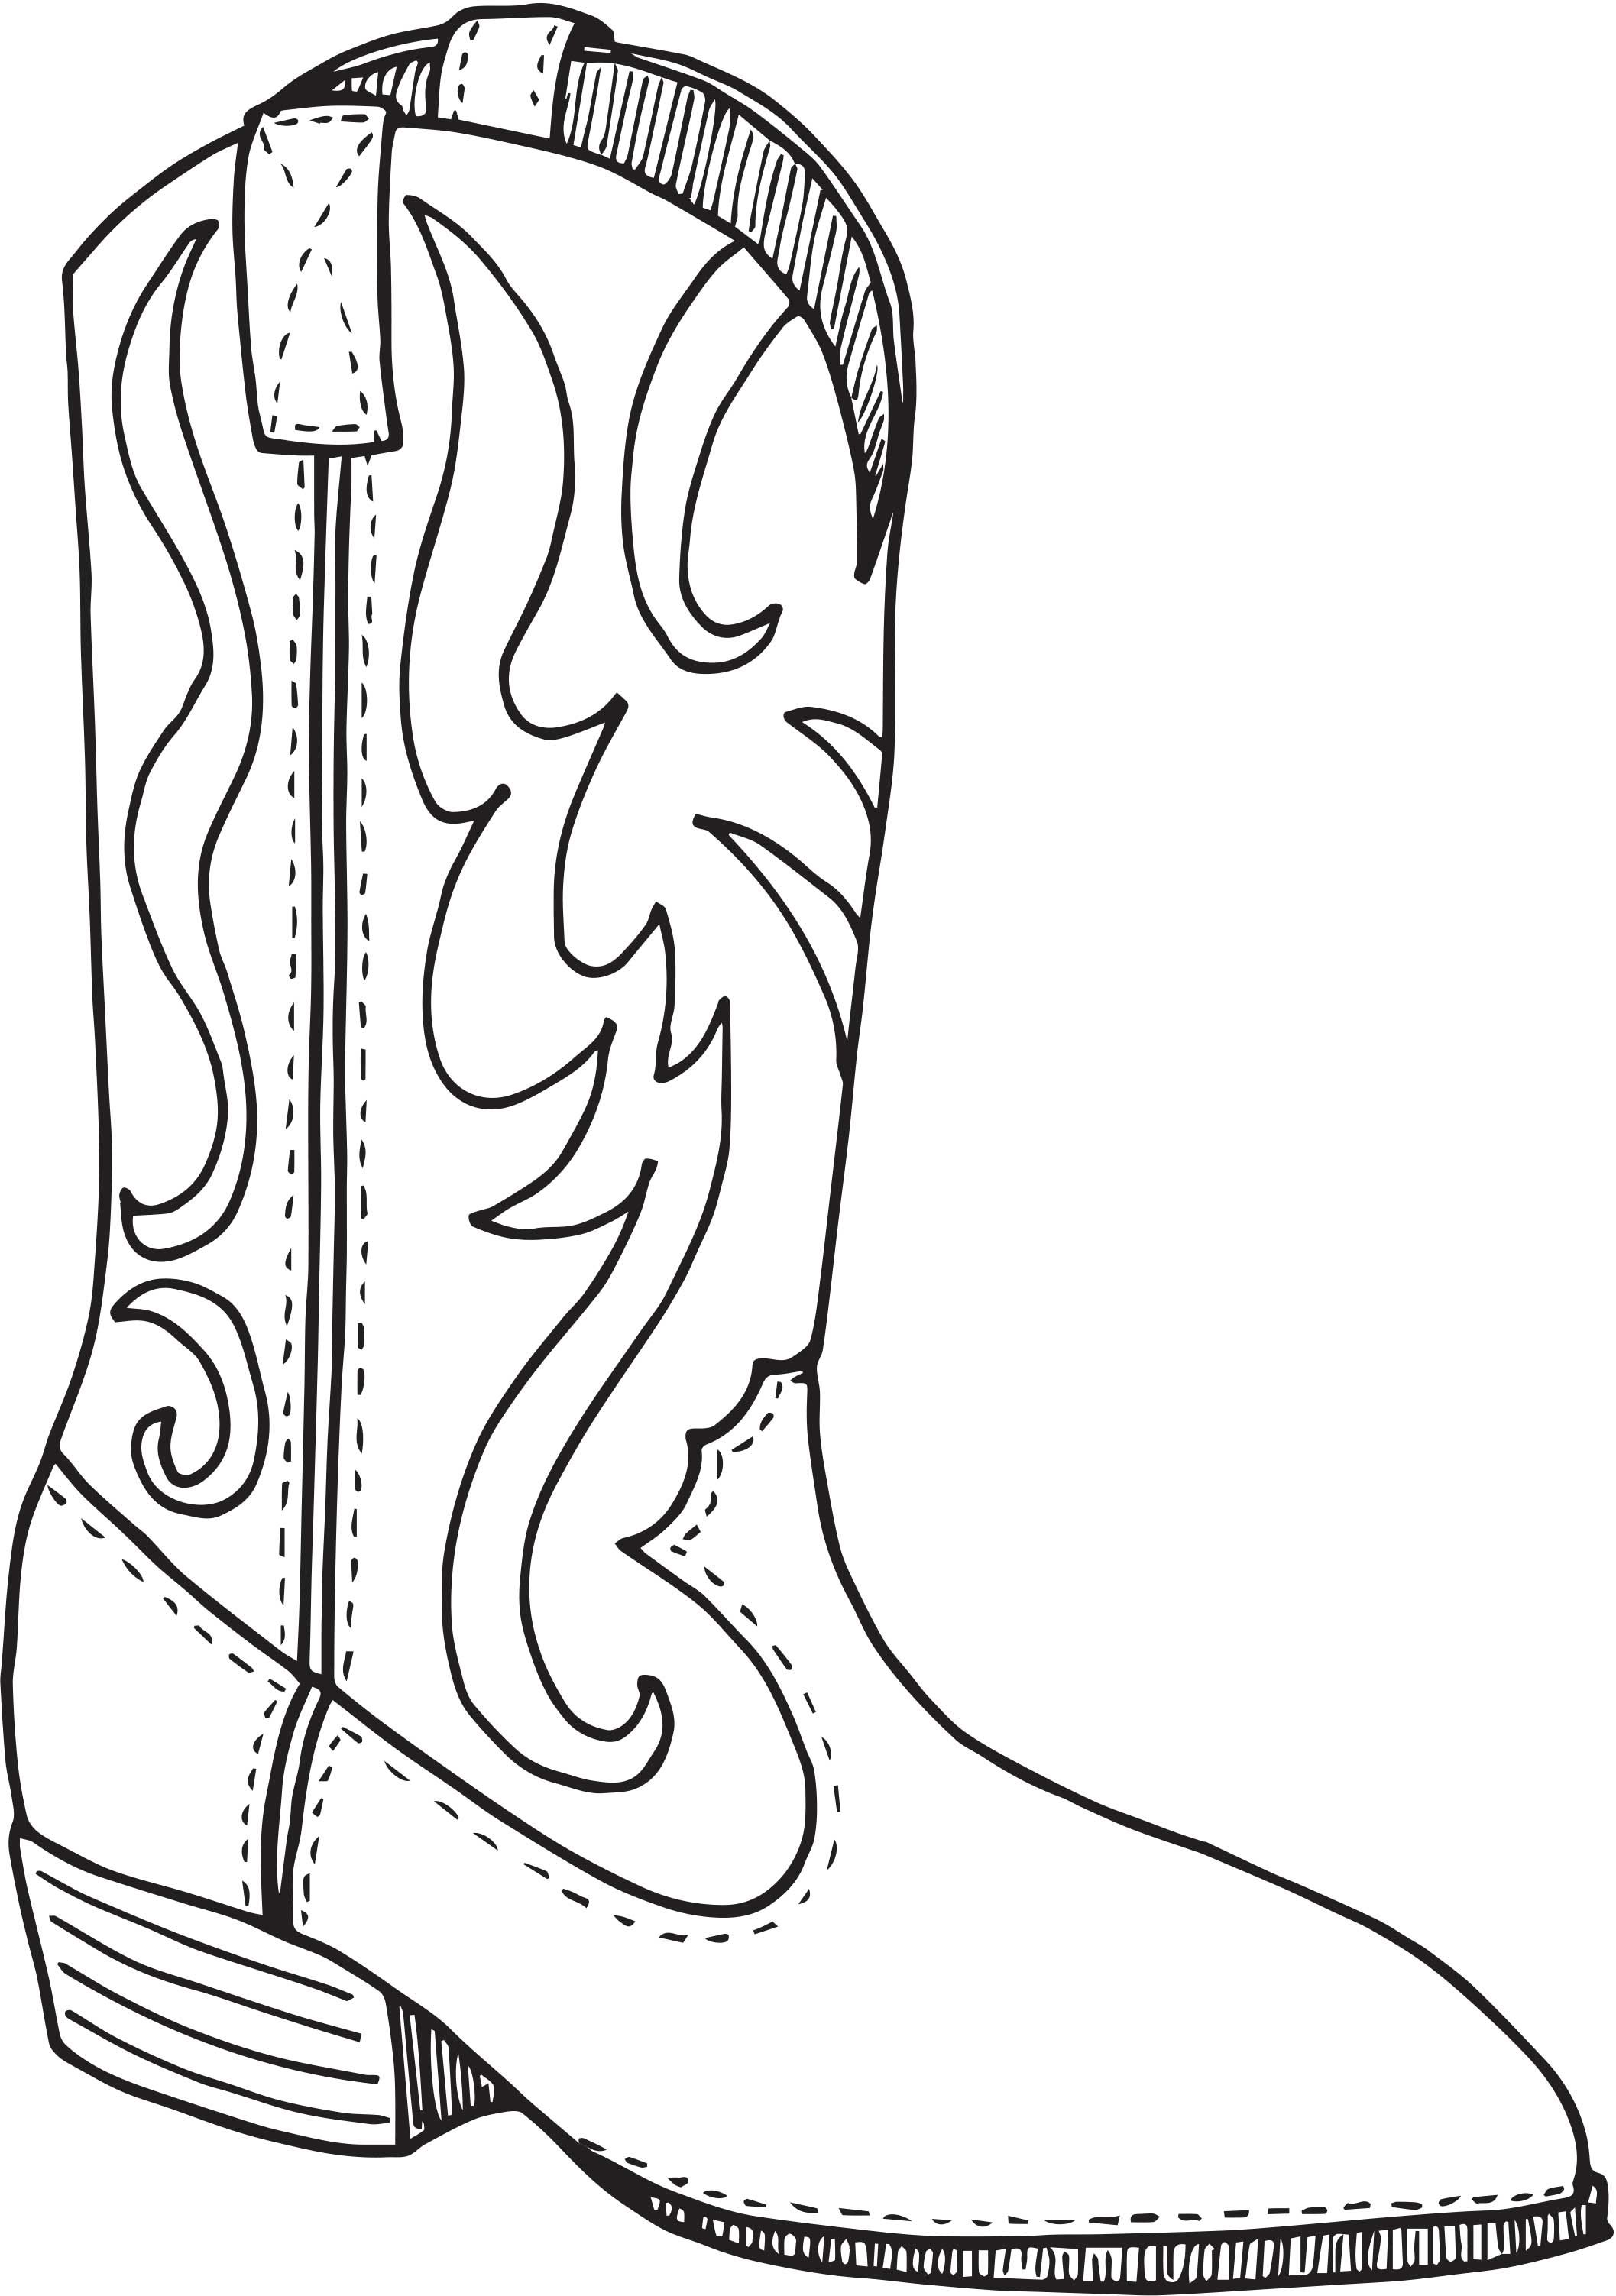 2115x3005 Day Cowboy Boot Coloring Page Vbx Cactusville